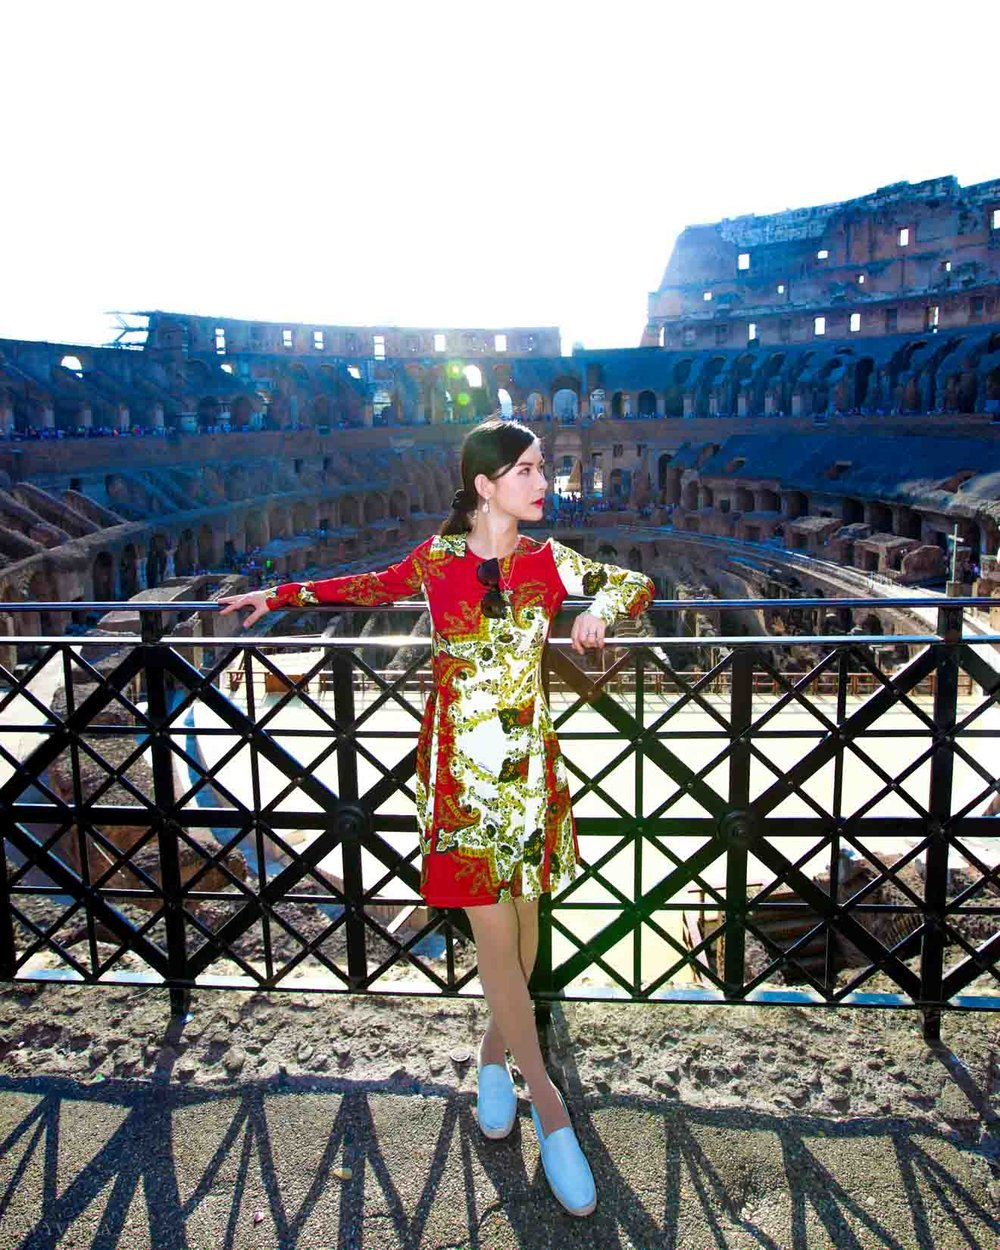 travel_a-look-inside-the-colosseum_09.jpg